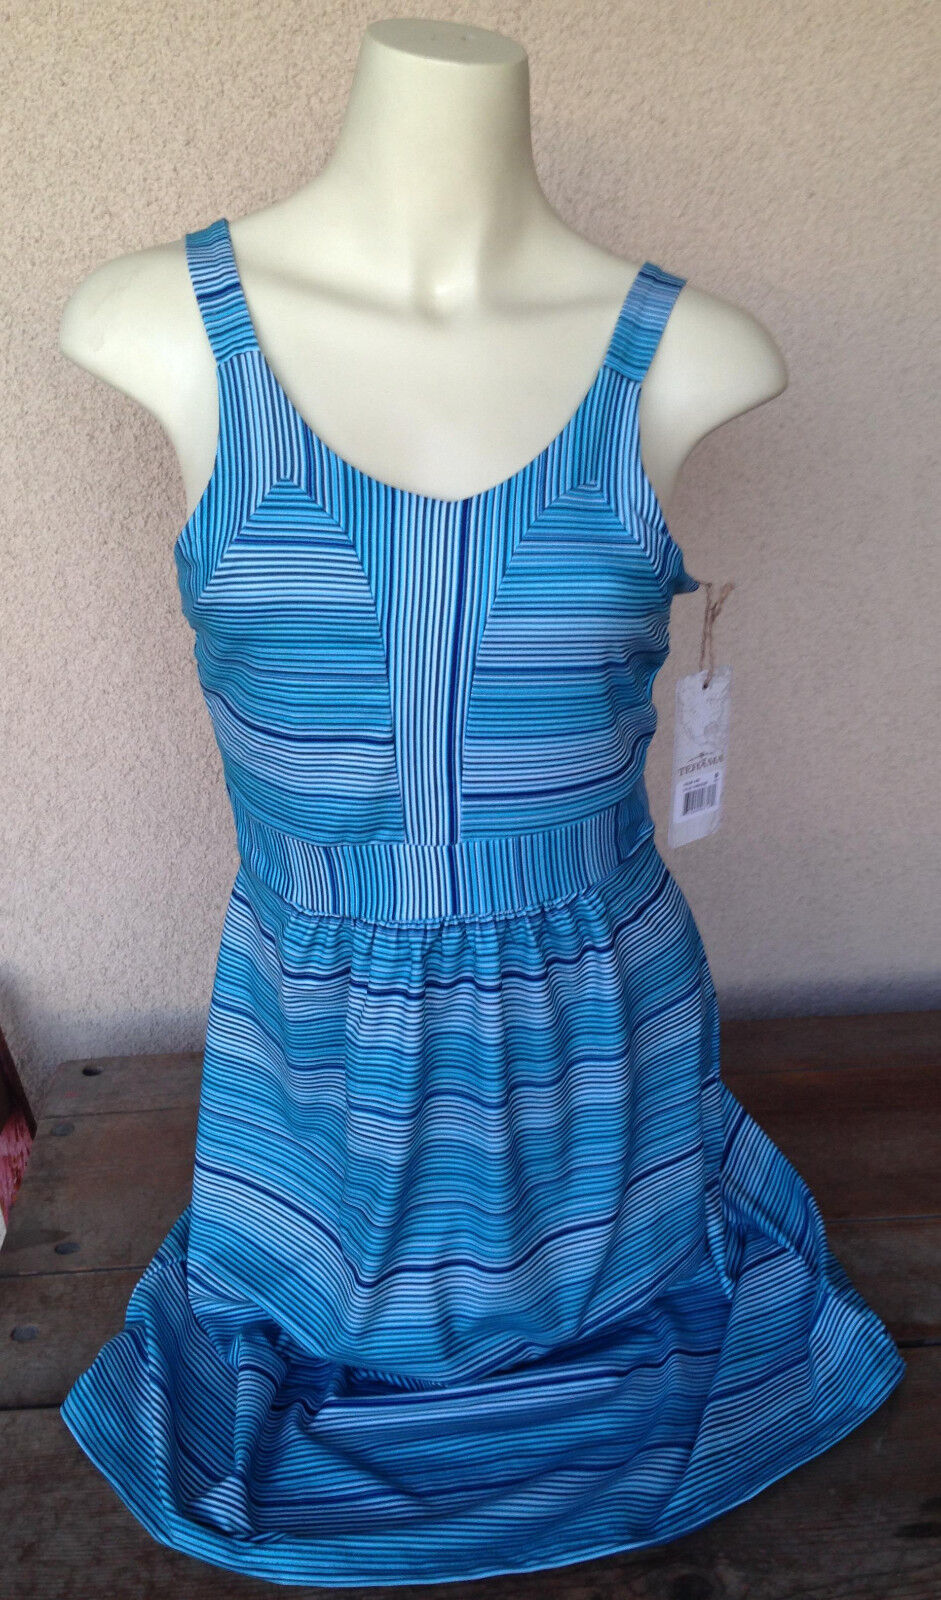 Womens Tehama Tennis Dress Jersey Turquoise bluee Small NWT New Stripes Straps